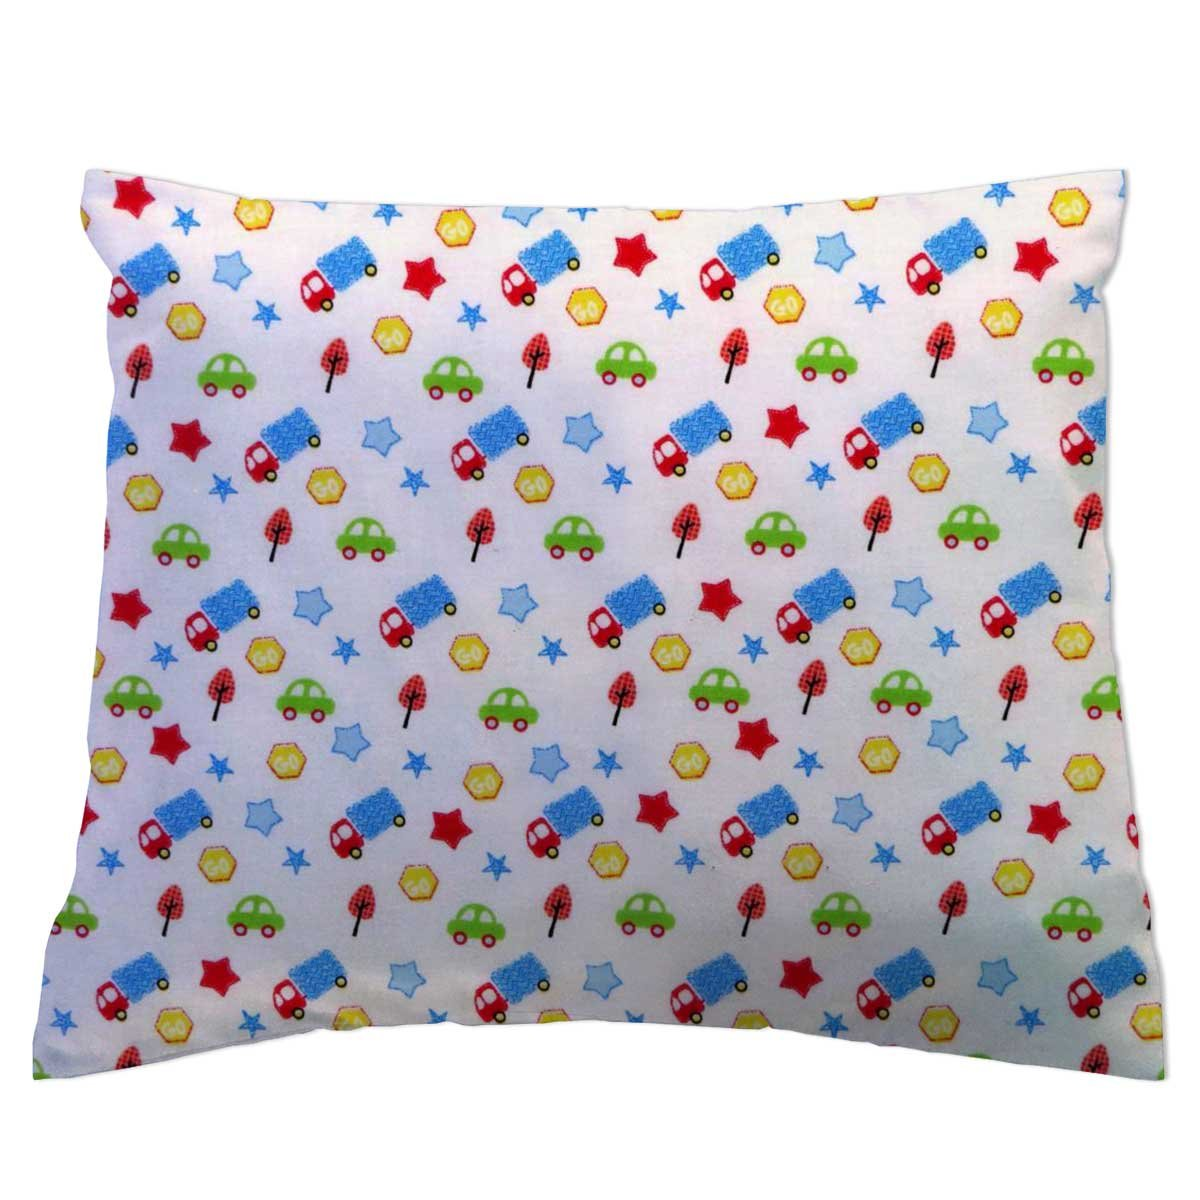 SheetWorld - Toddler Pillowcase Hypoallergenic 13 x 17 Made in USA - Kiddie Trains BPC-W1092